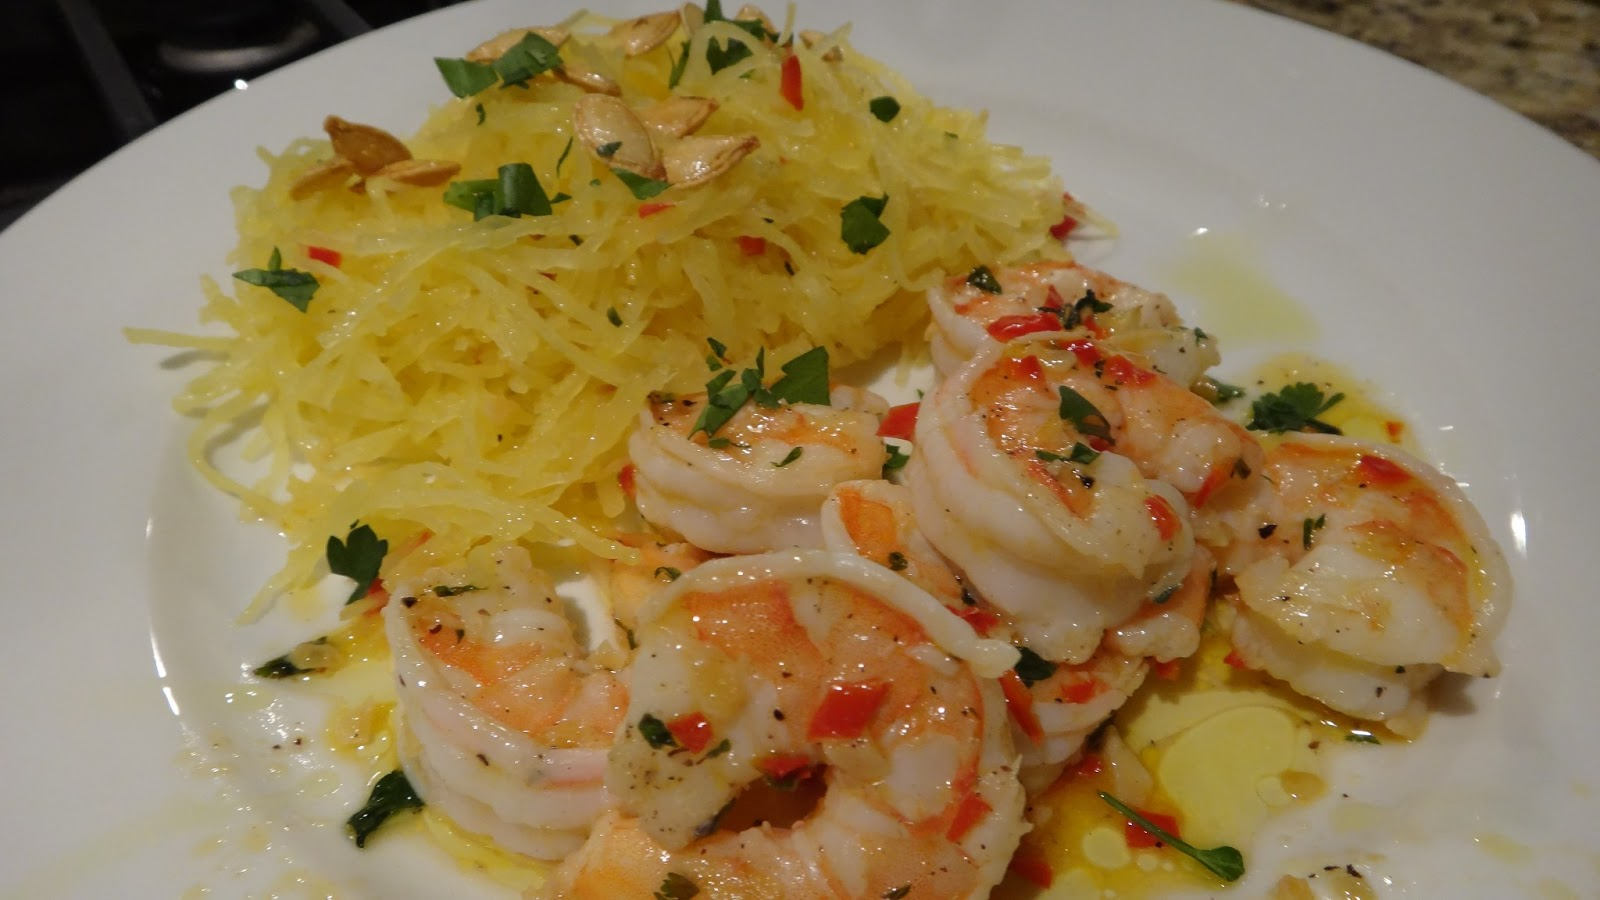 ... who wanted to know how i would prepare shrimps and spaghetti squash i